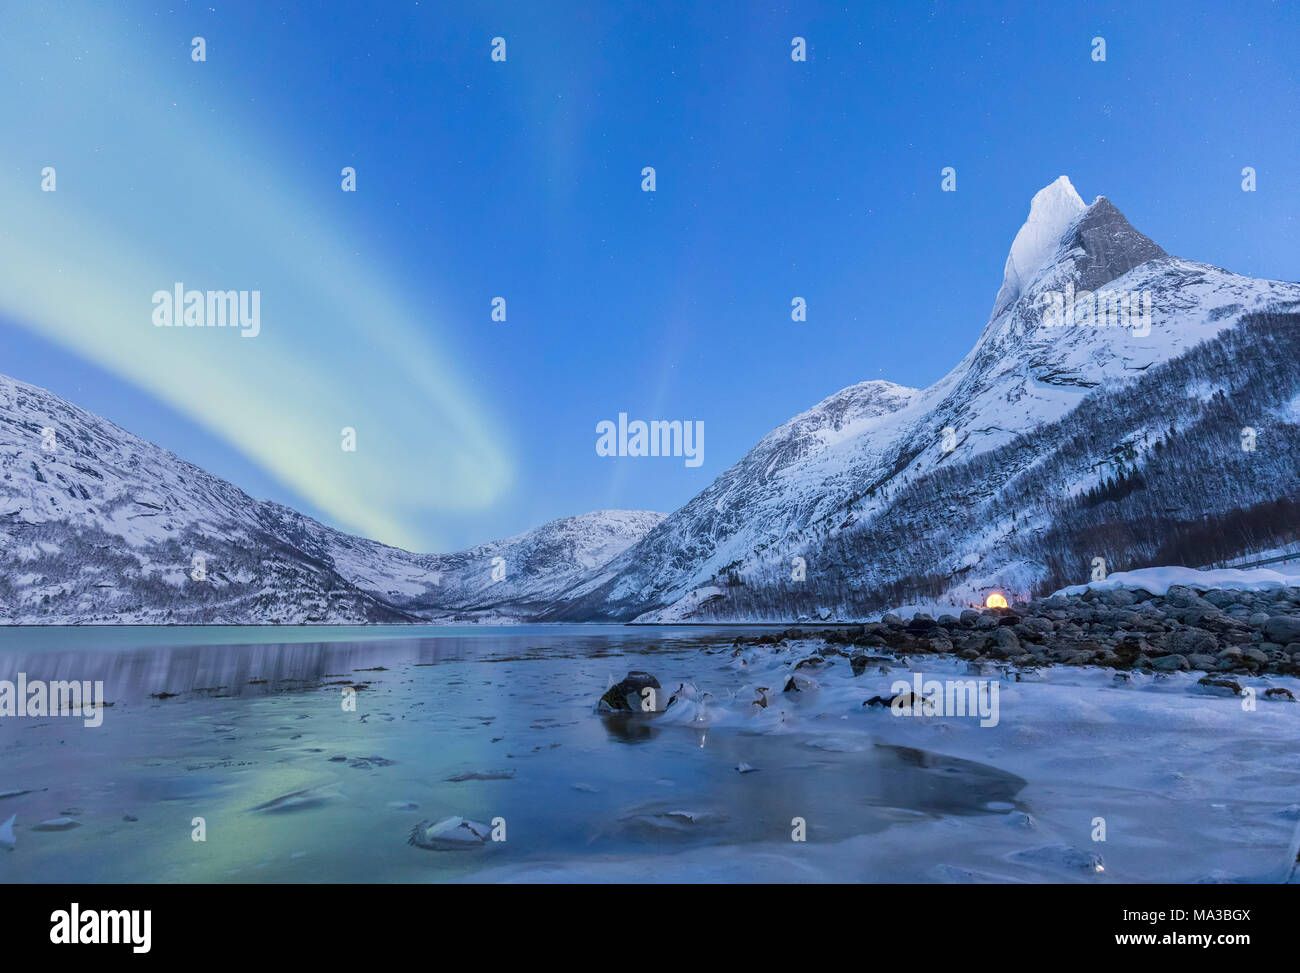 Northern lights over frozen sea in a Tysfjord bay and near the Norway's national mountains granitic snowy peak called Stetind,tysfjord Nordland county Norway Europe - Stock Image